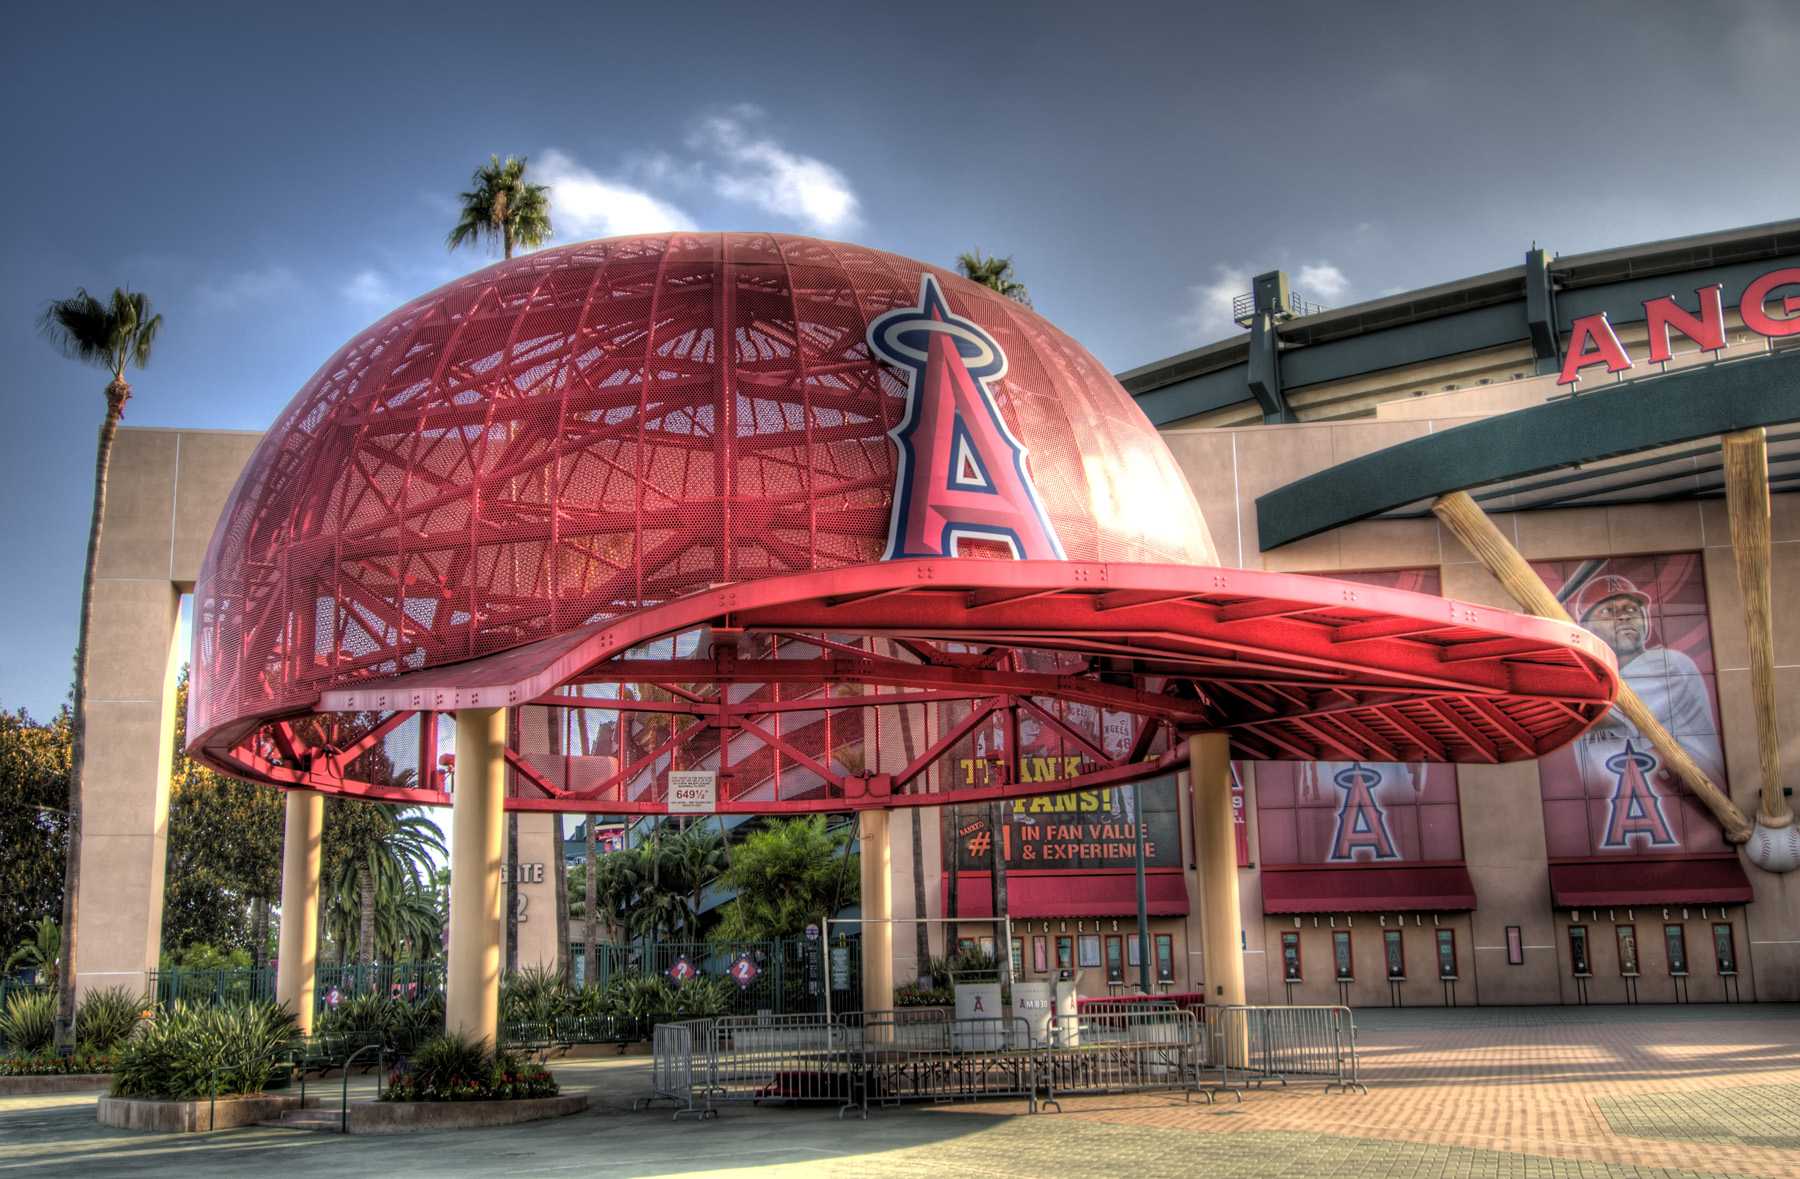 Los Angeles Angels of Anaheim wallpapers Los Angeles Angels of 1800x1179